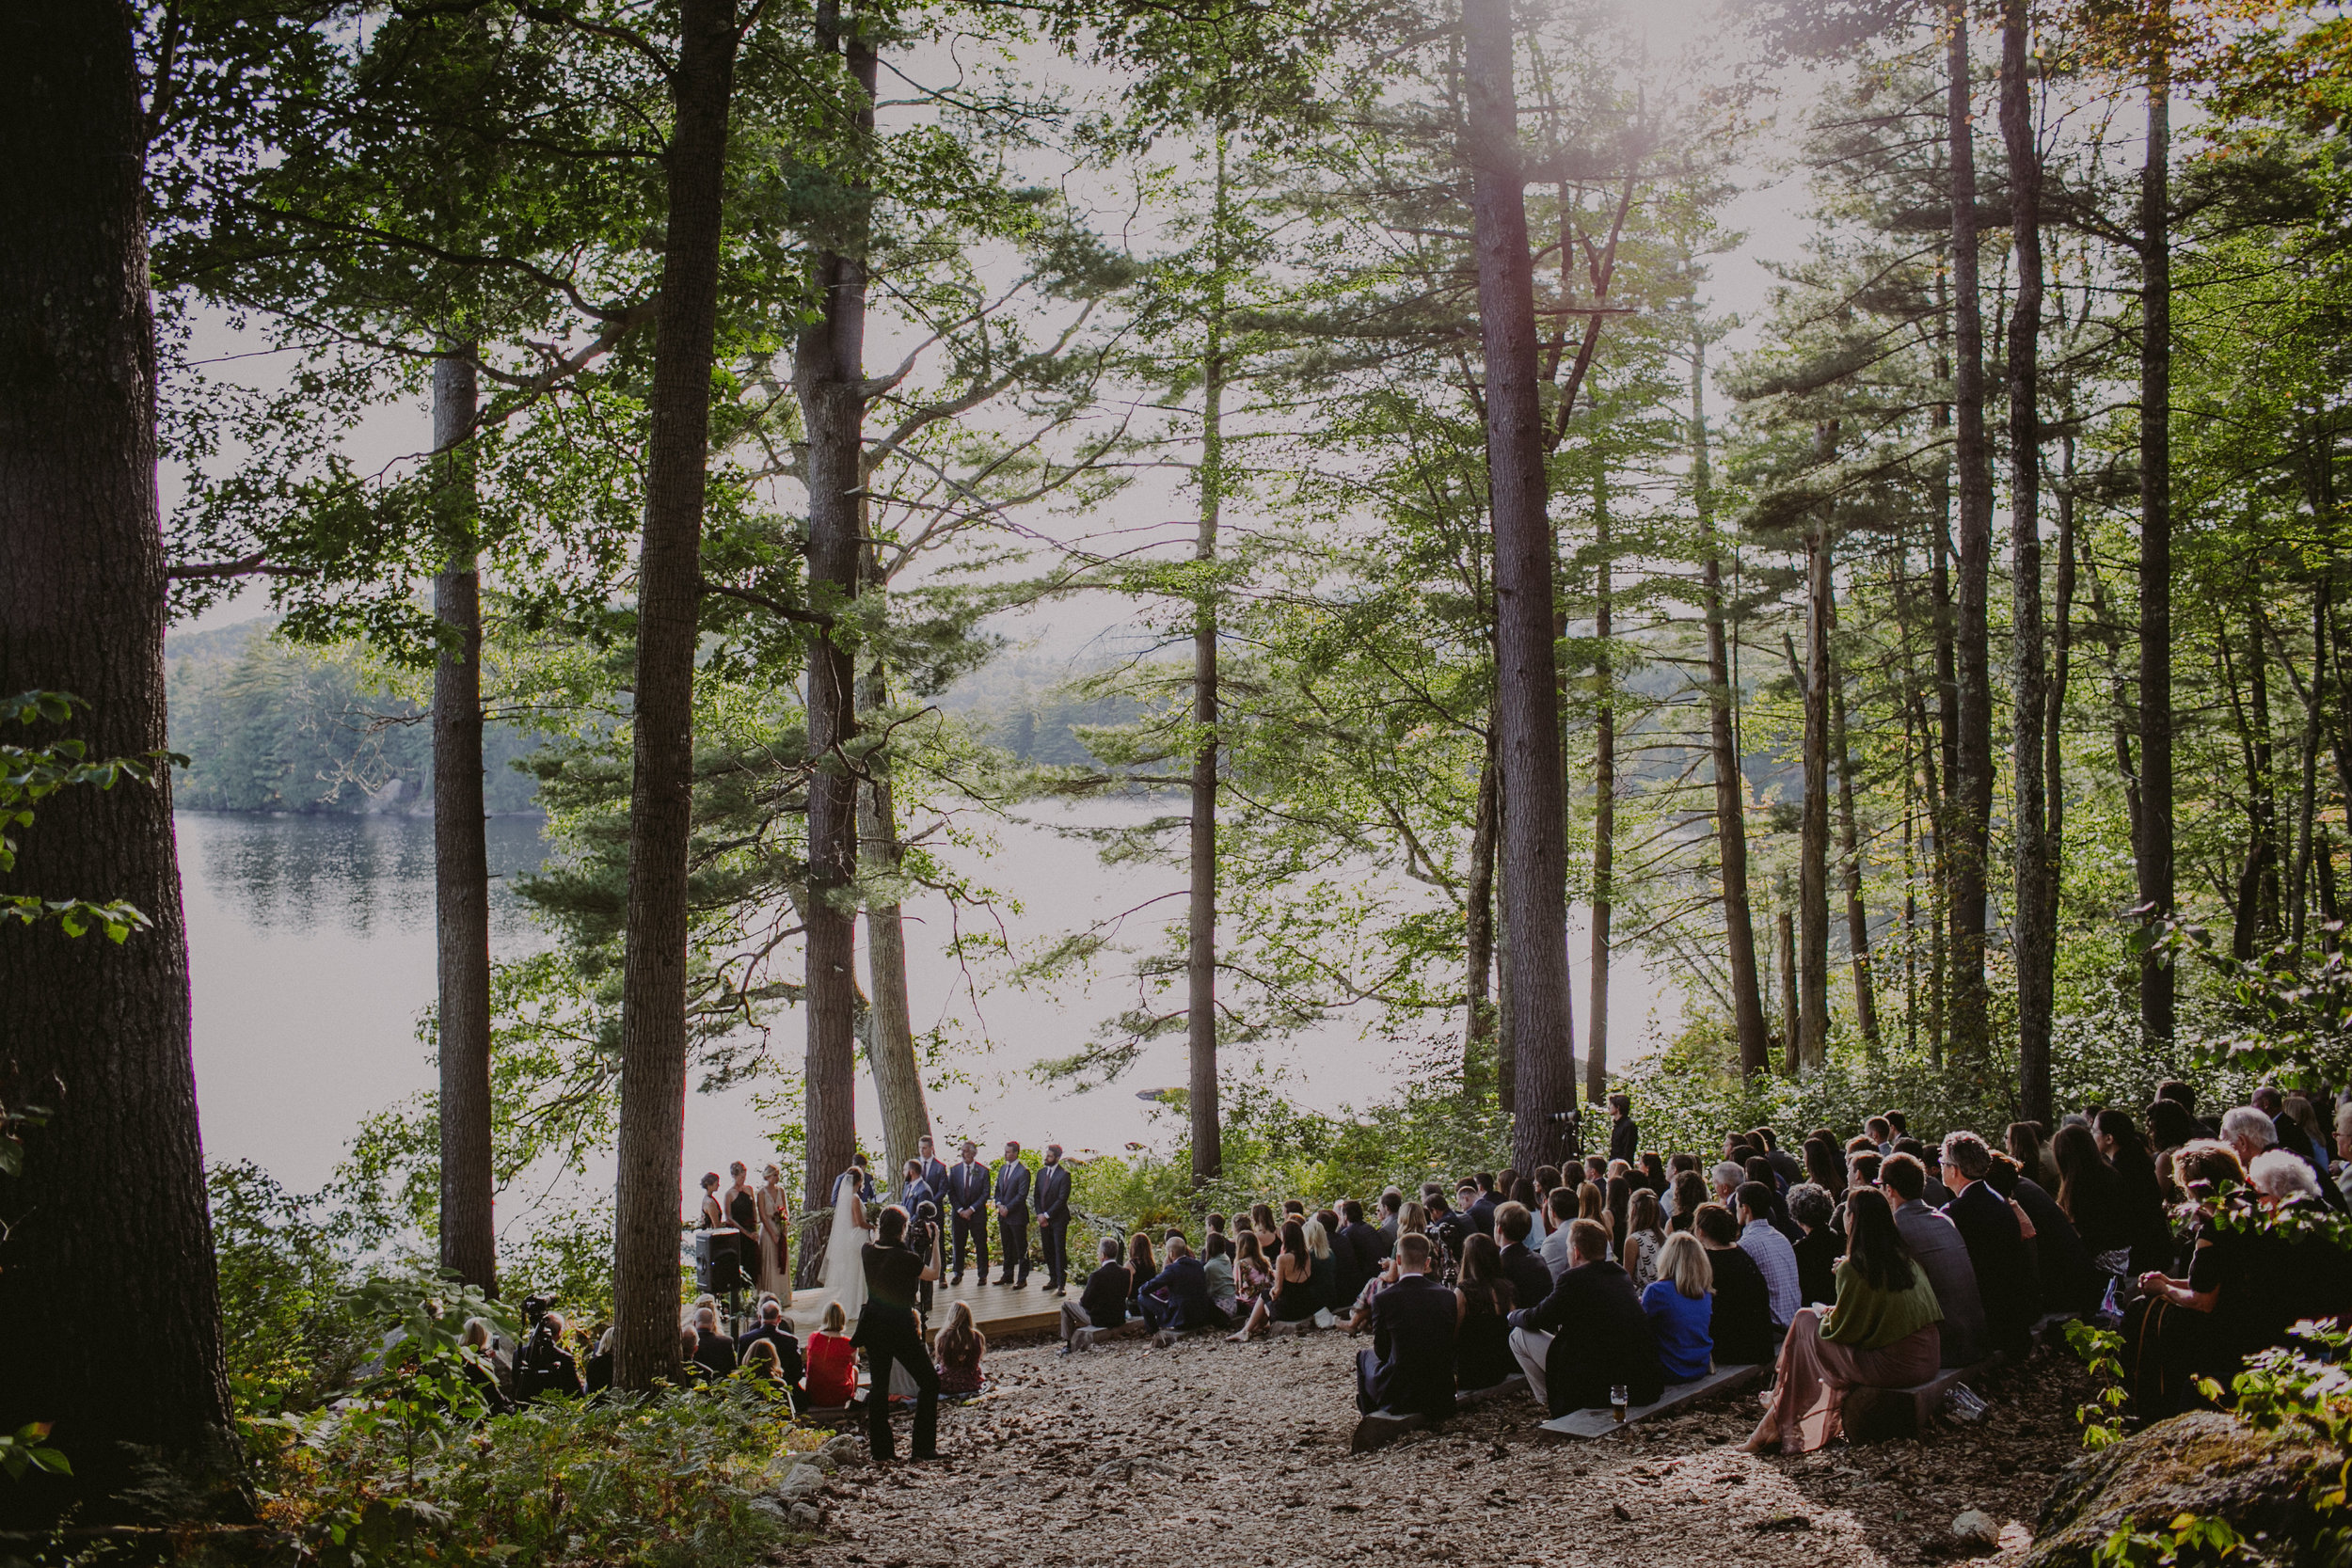 windsor mountain summer camp wedding NH chellise michael photography 1778.jpg